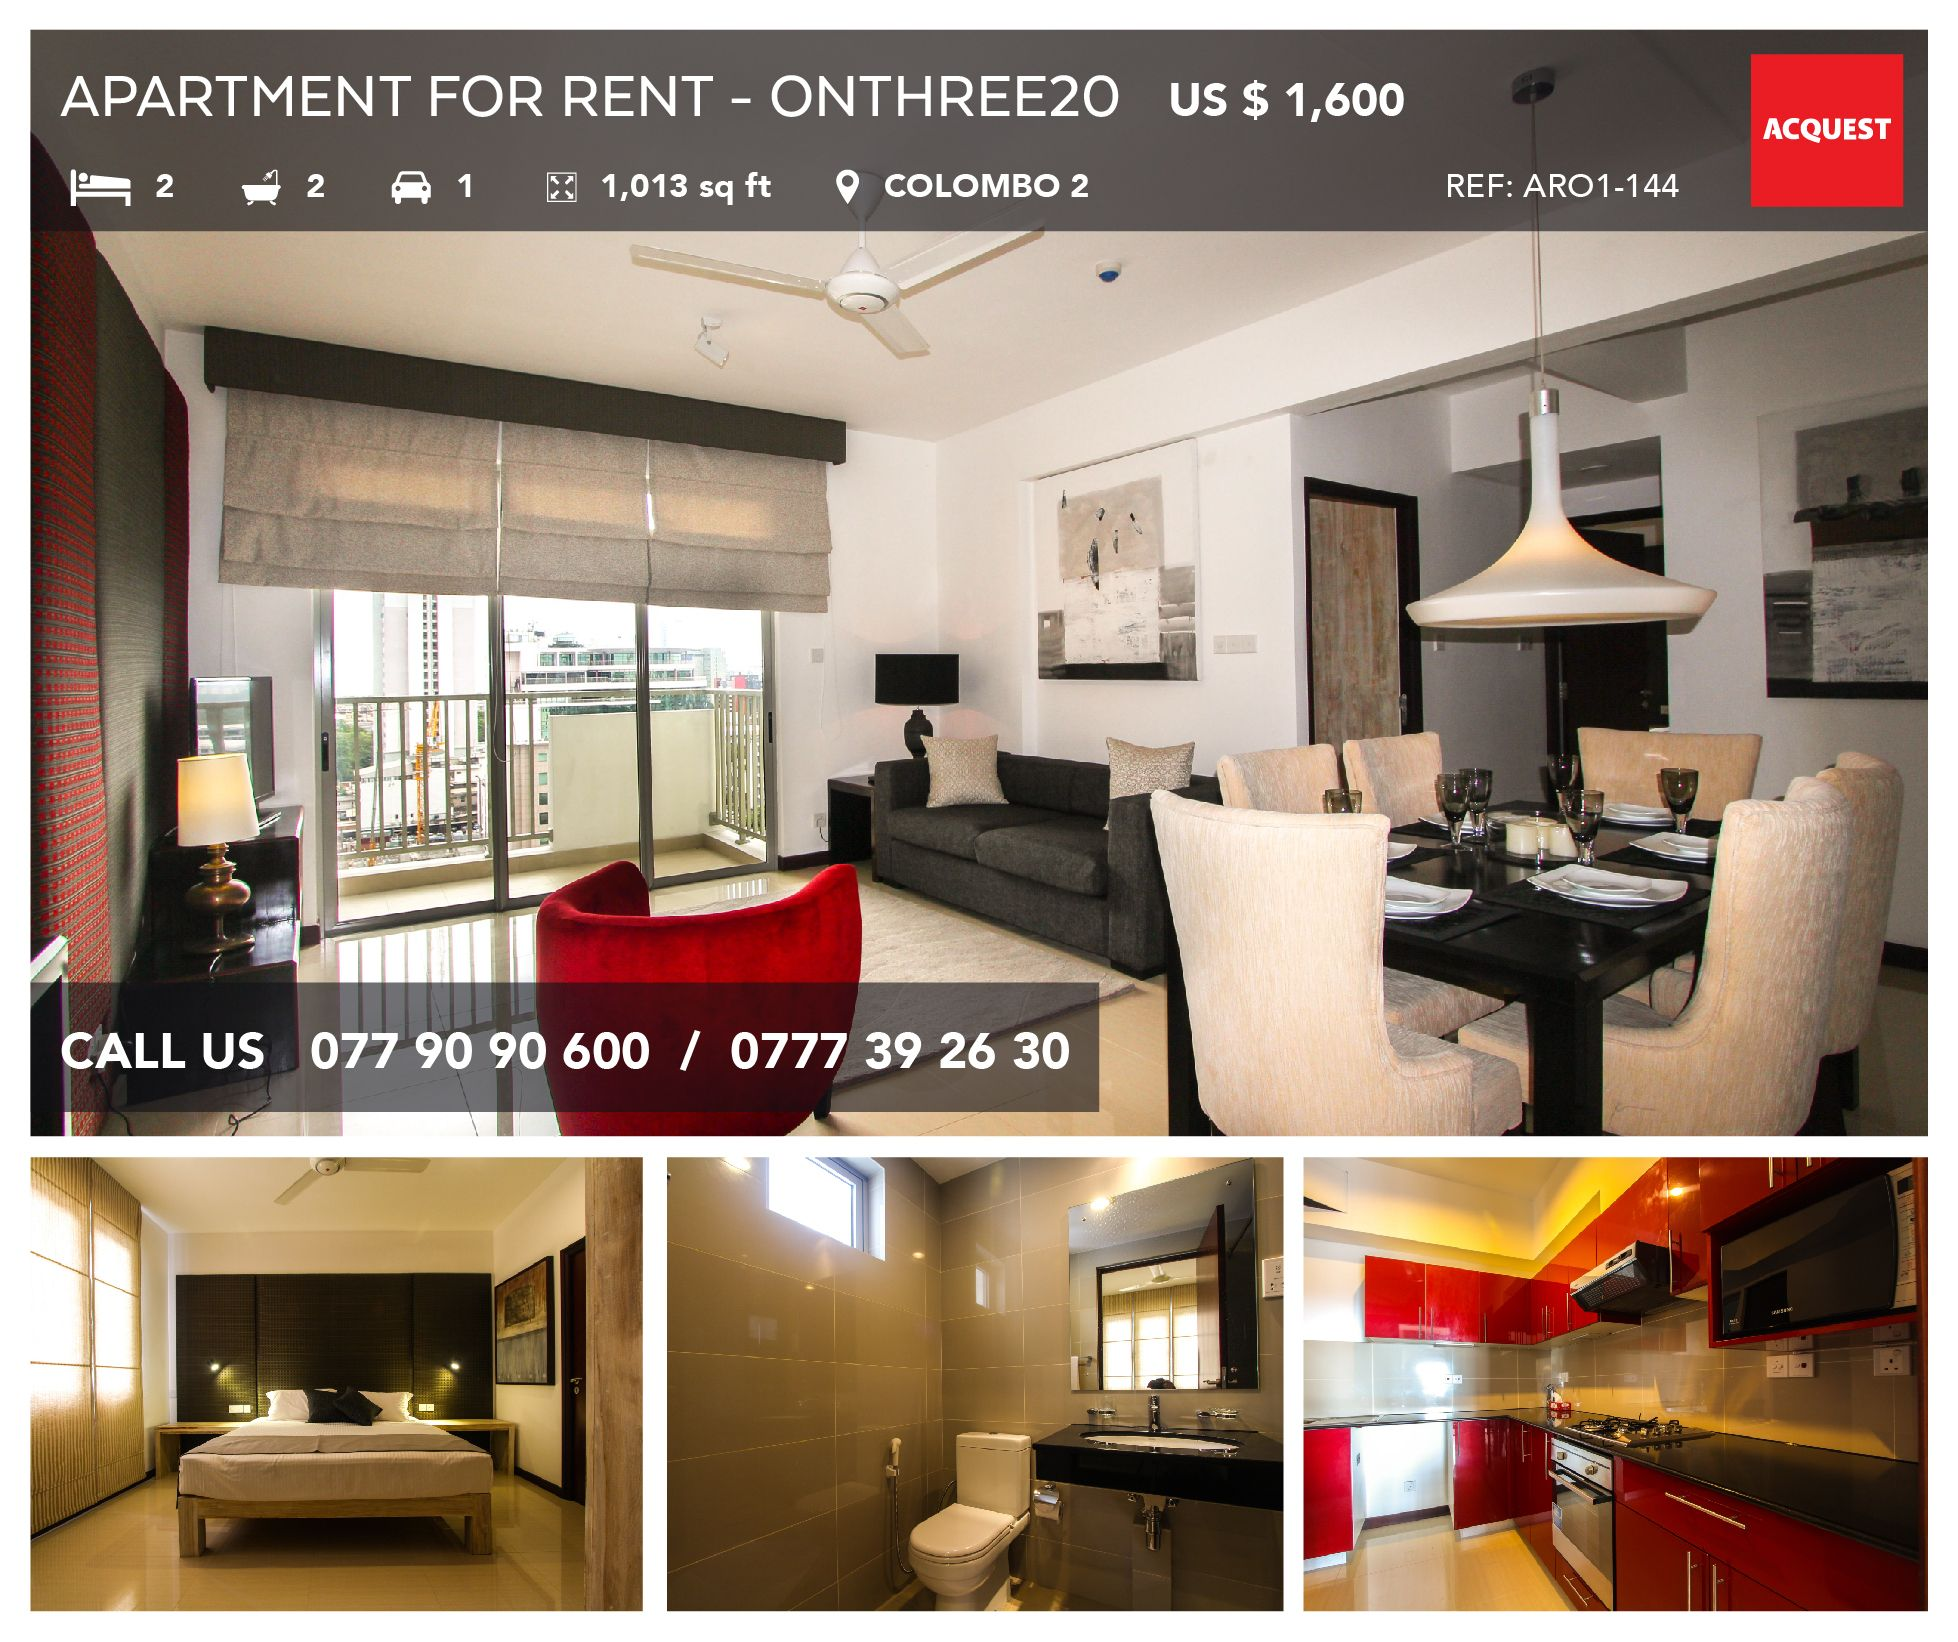 to view this apartment contact us 9477 90 90 600 94777 39 26